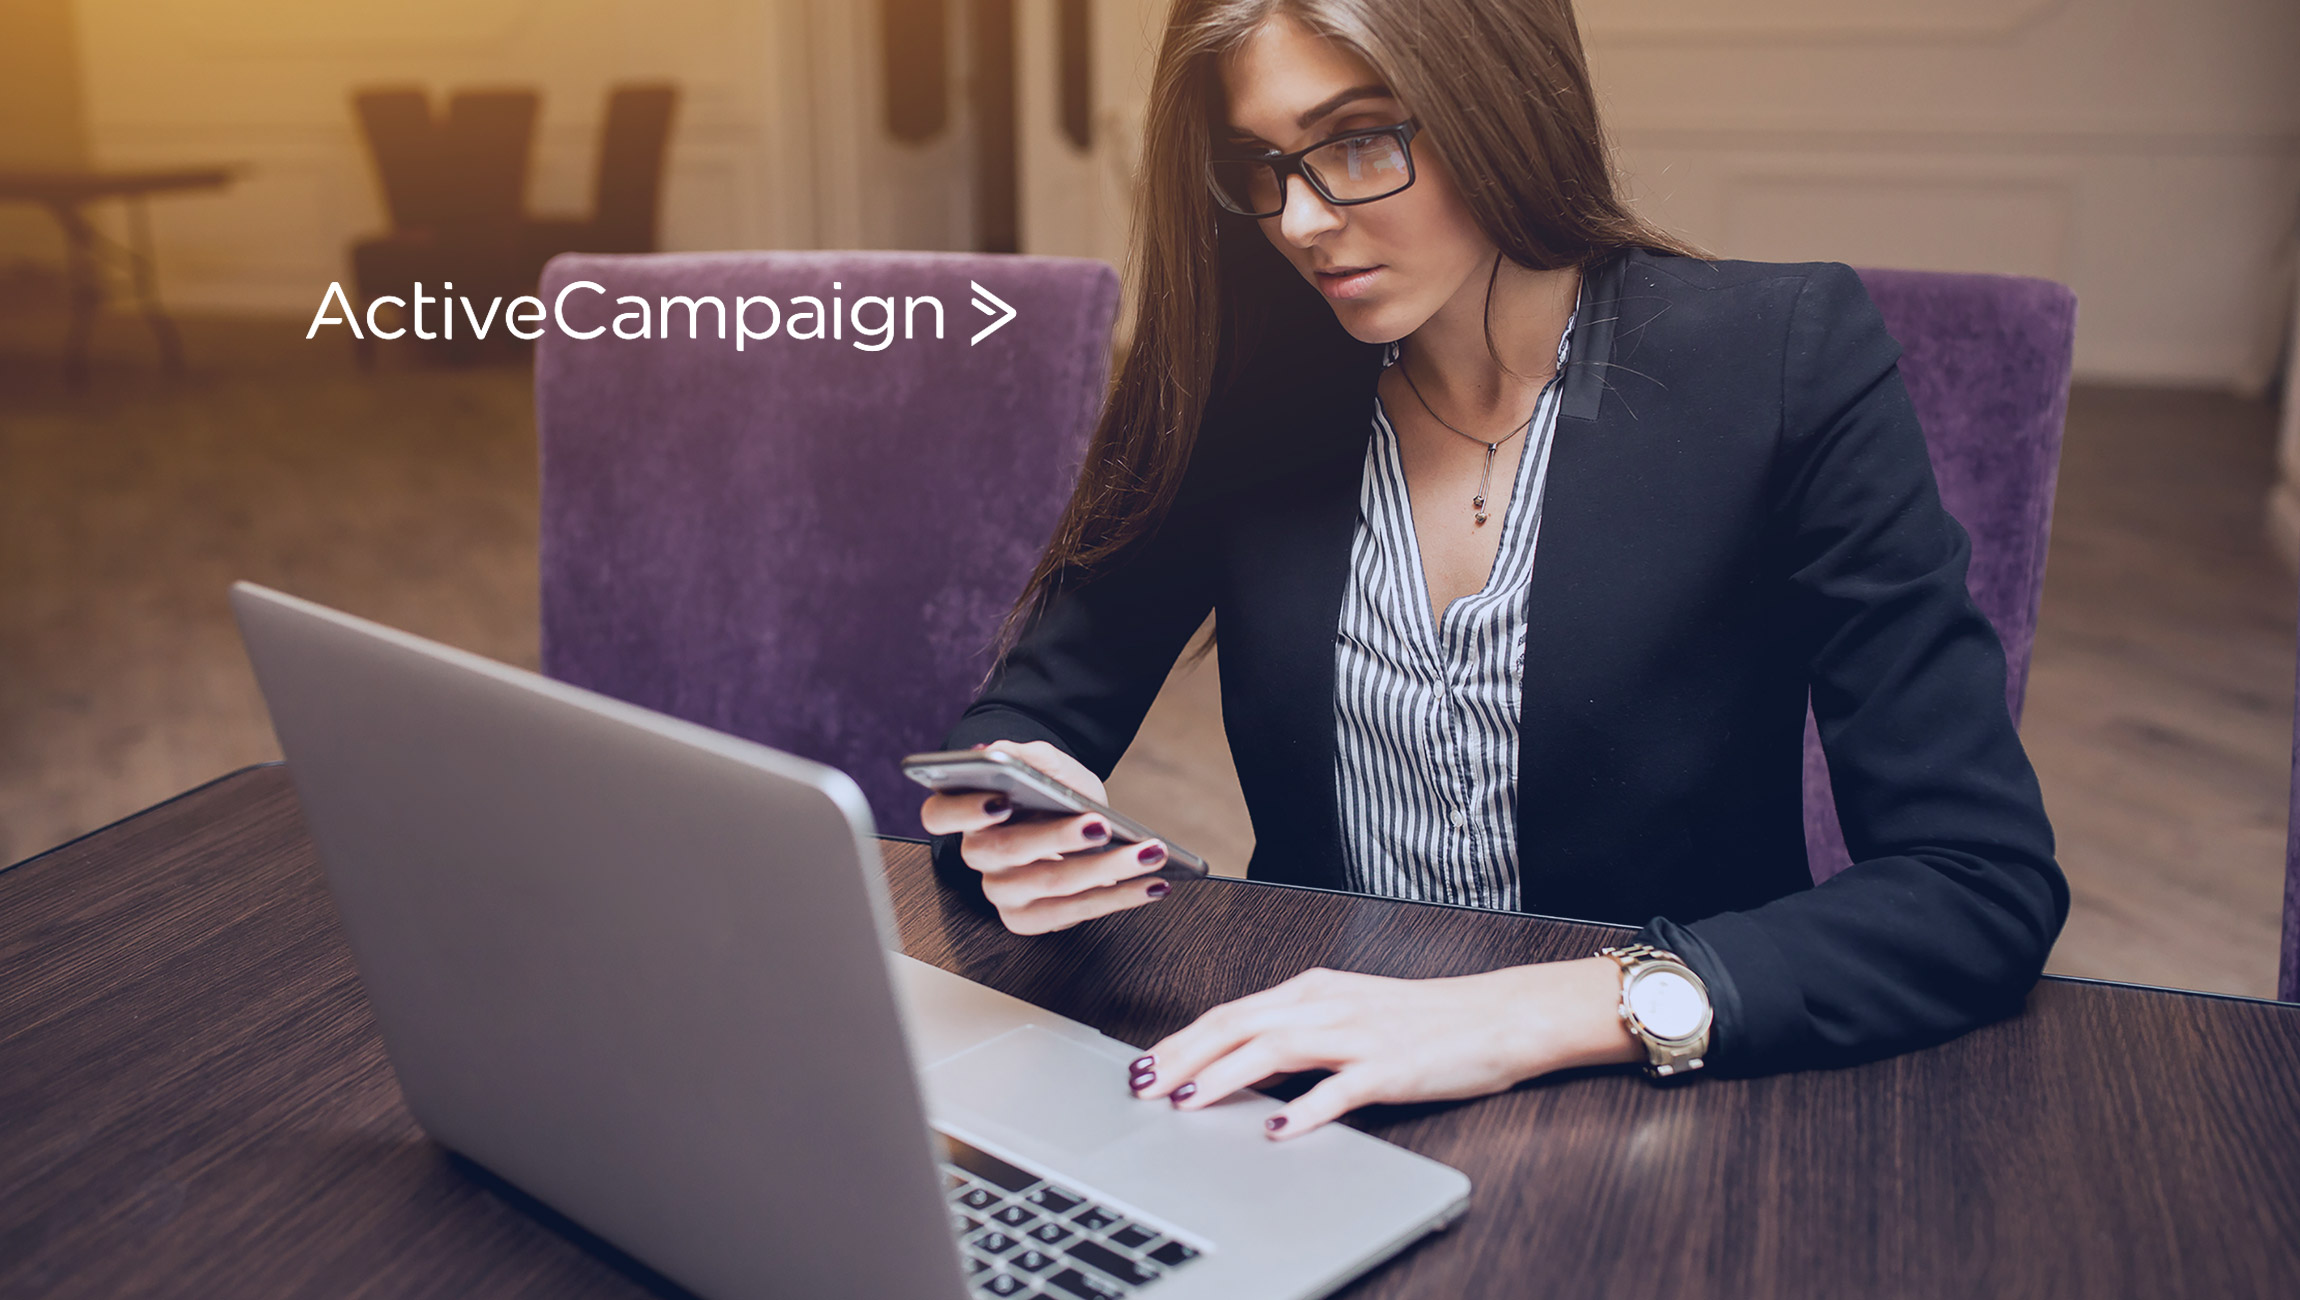 ActiveCampaign Announces Conversations, the Automation-Driven Omni-Channel Communication Platform